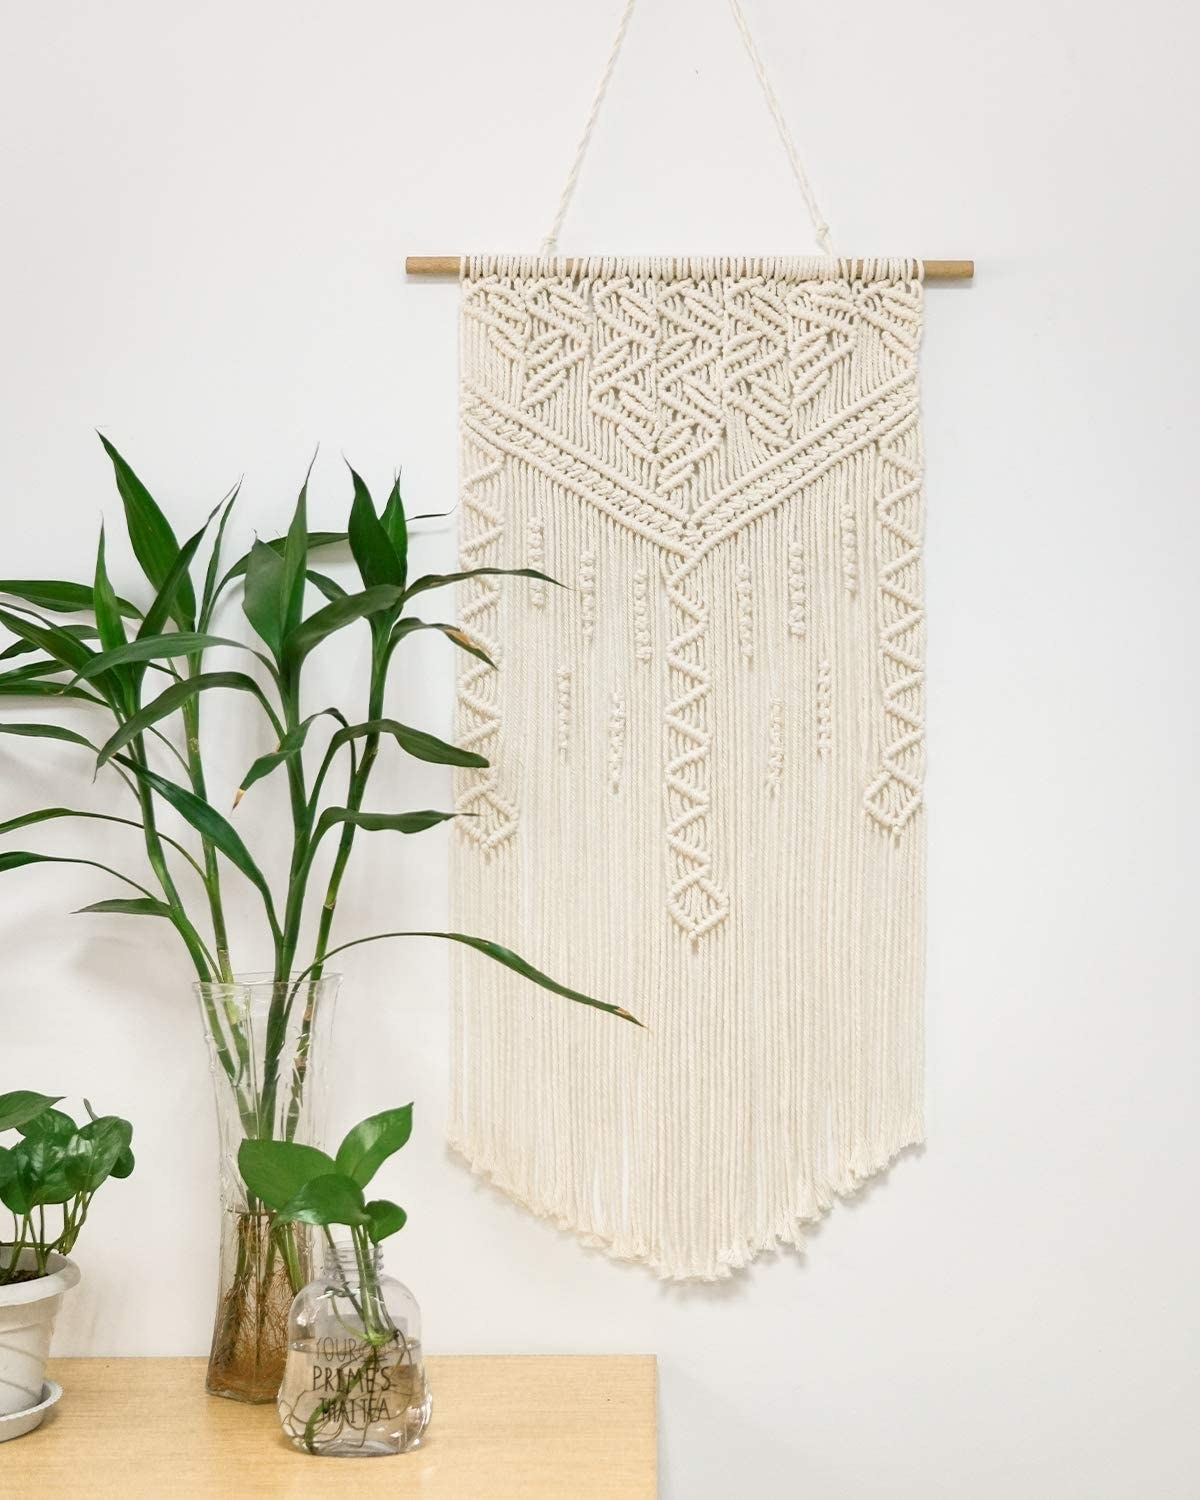 A macrame decoration hangs on a wall with dowel to support it and a hanging string